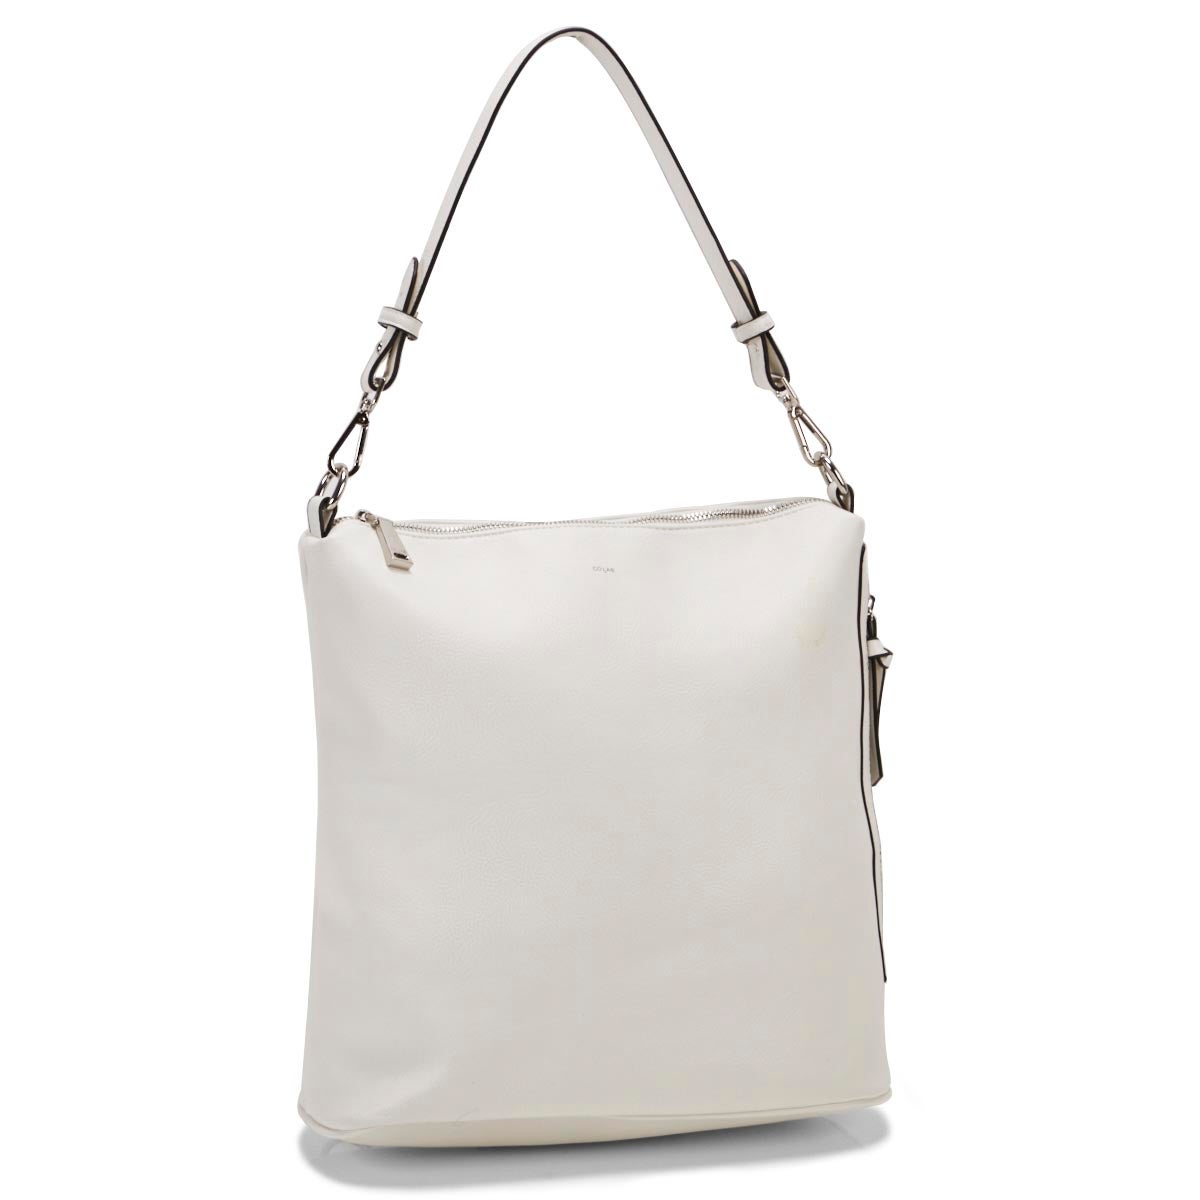 Lds white convertible hobo bag